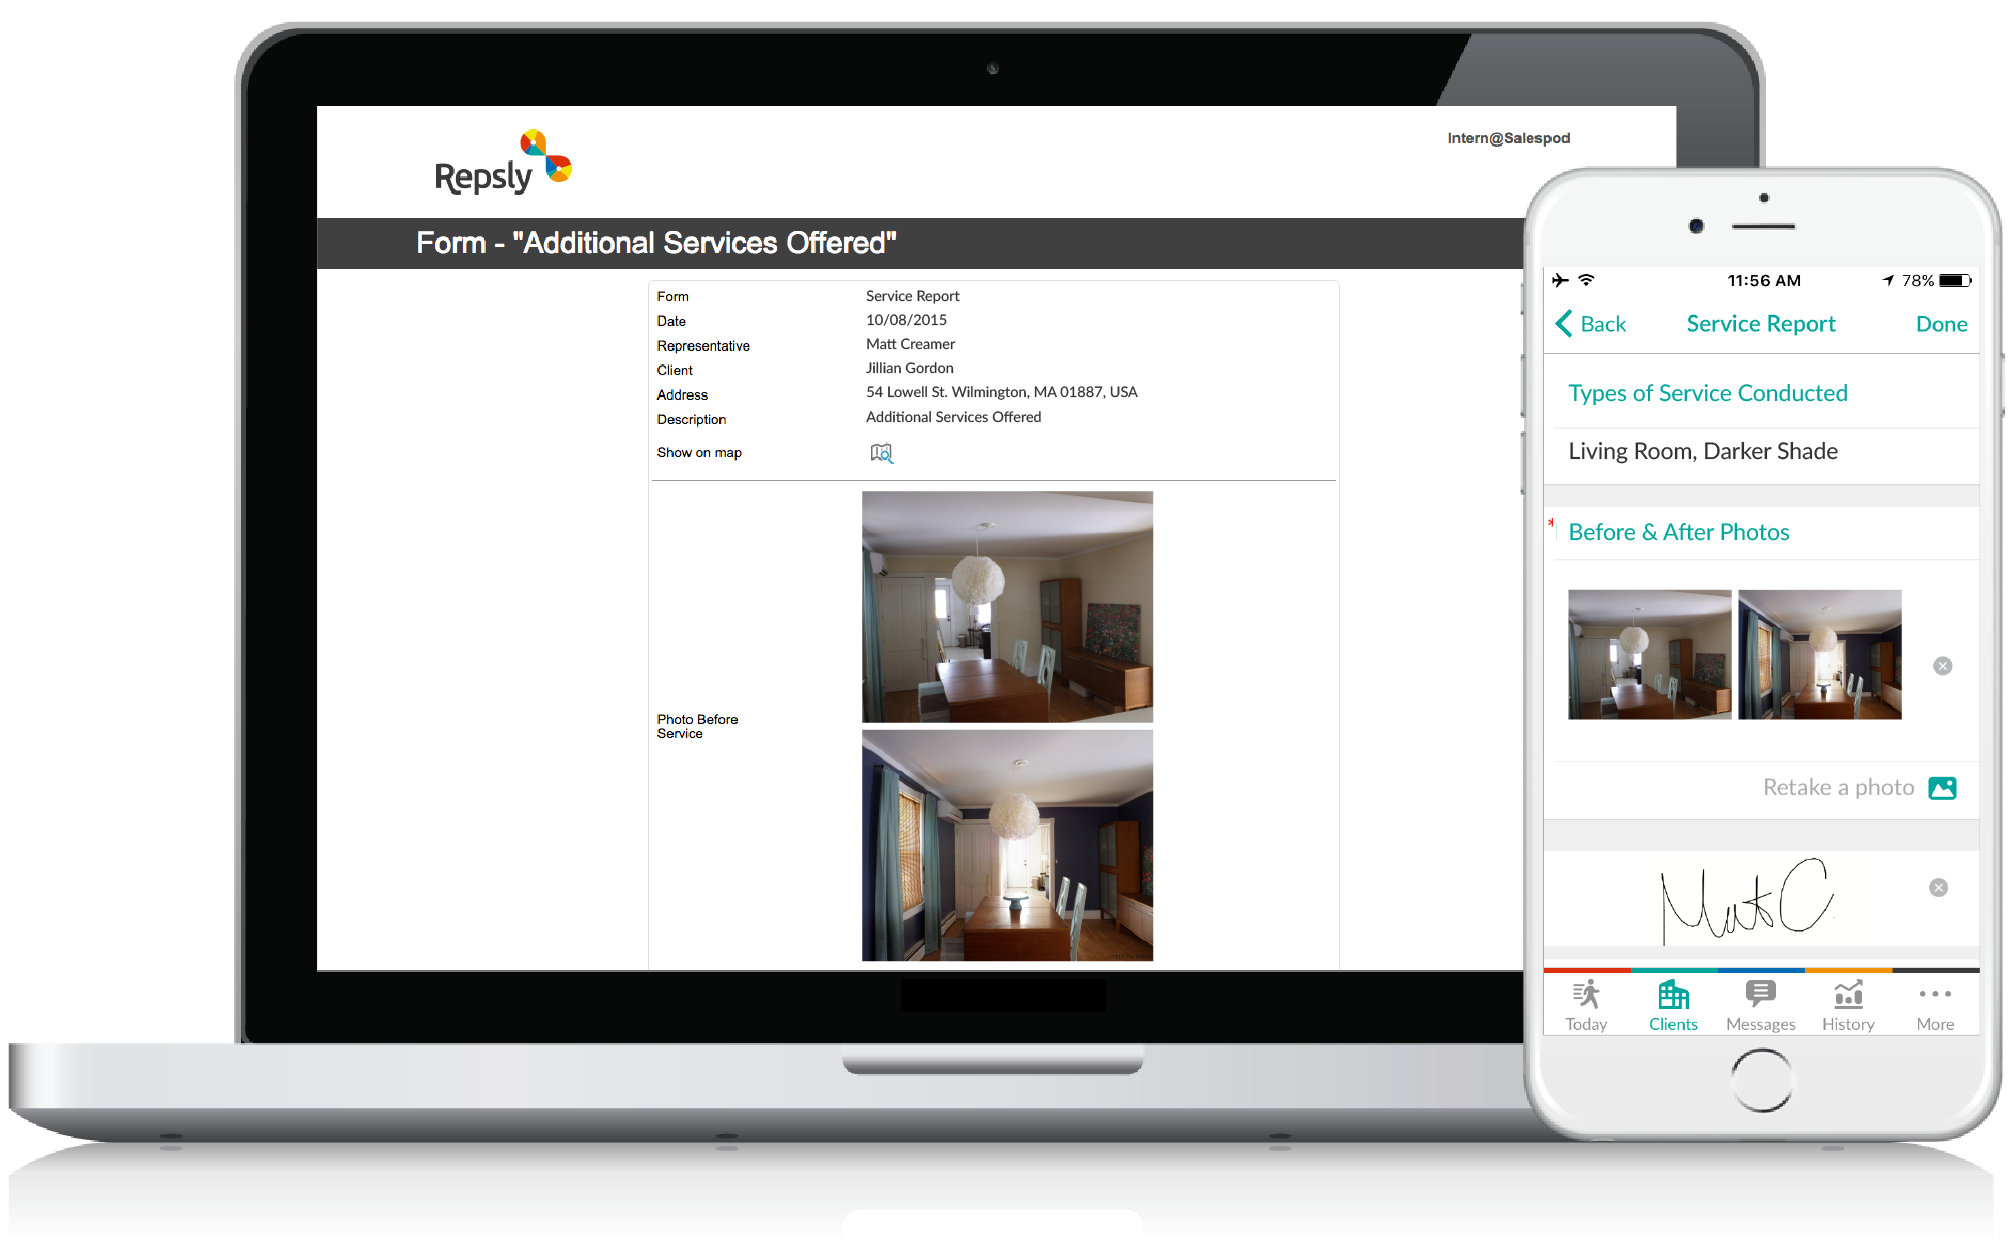 Painting Contractor Software Mobile forms